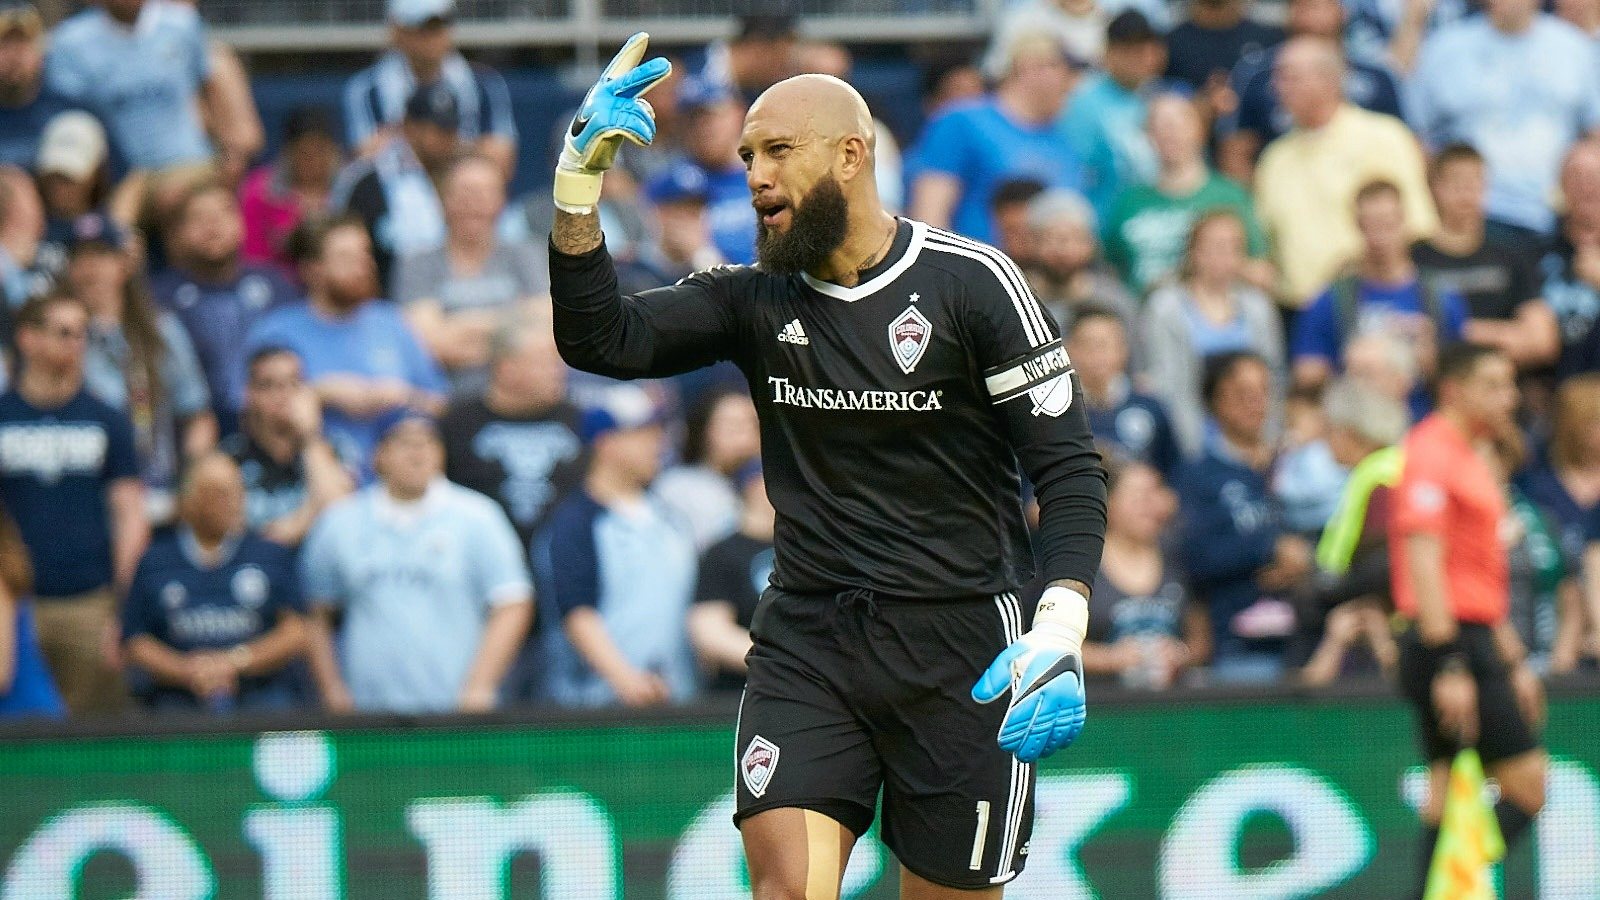 041517-Colorado-Rapids-Tim-Howard